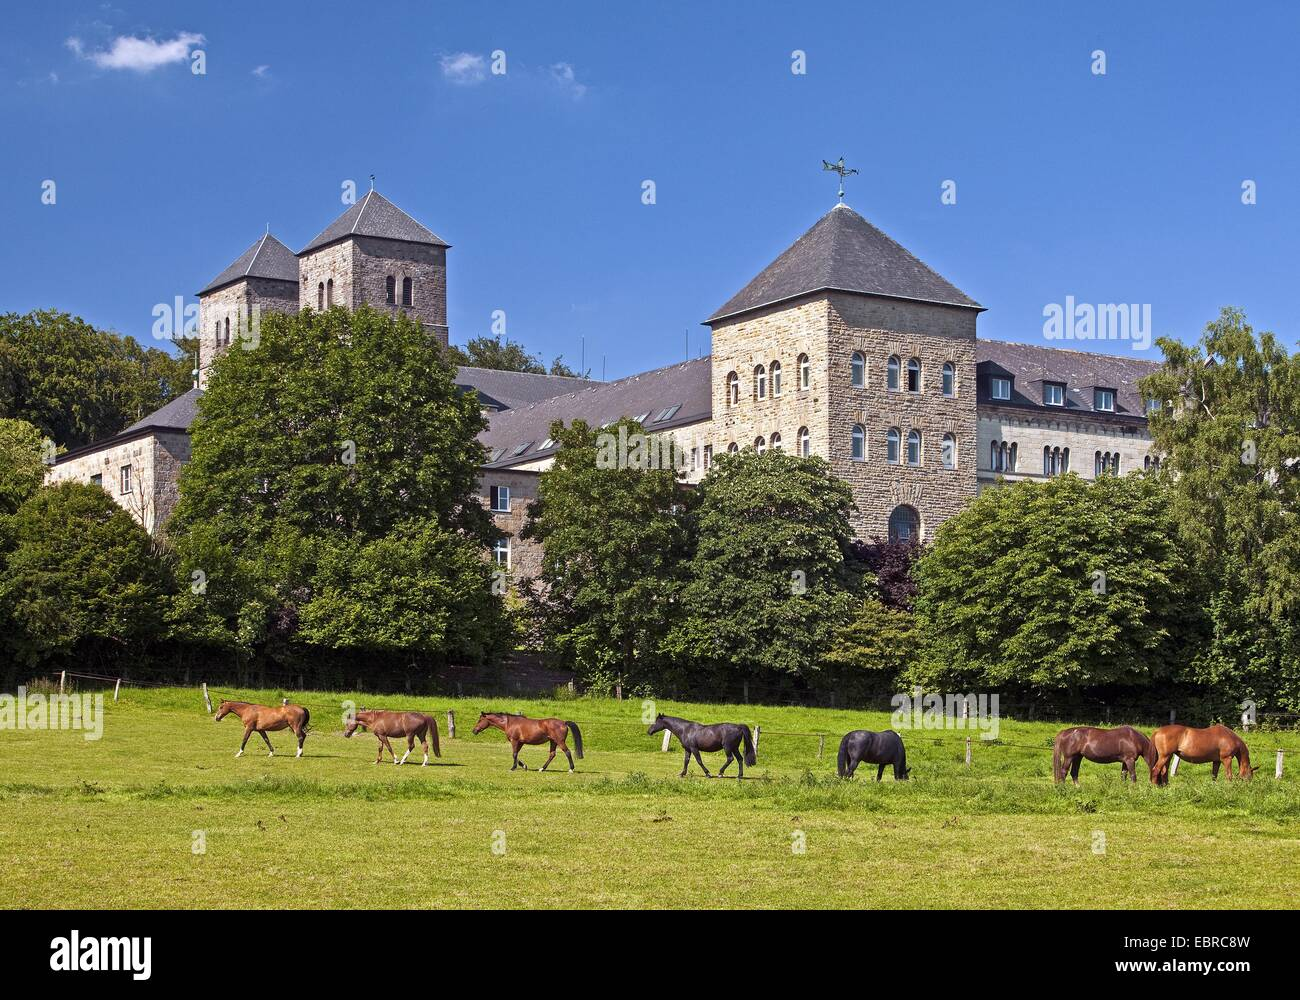 domestic horse (Equus przewalskii f. caballus), horses grazing in front of the Benedictine monastery Gerleve, Germany, - Stock Image